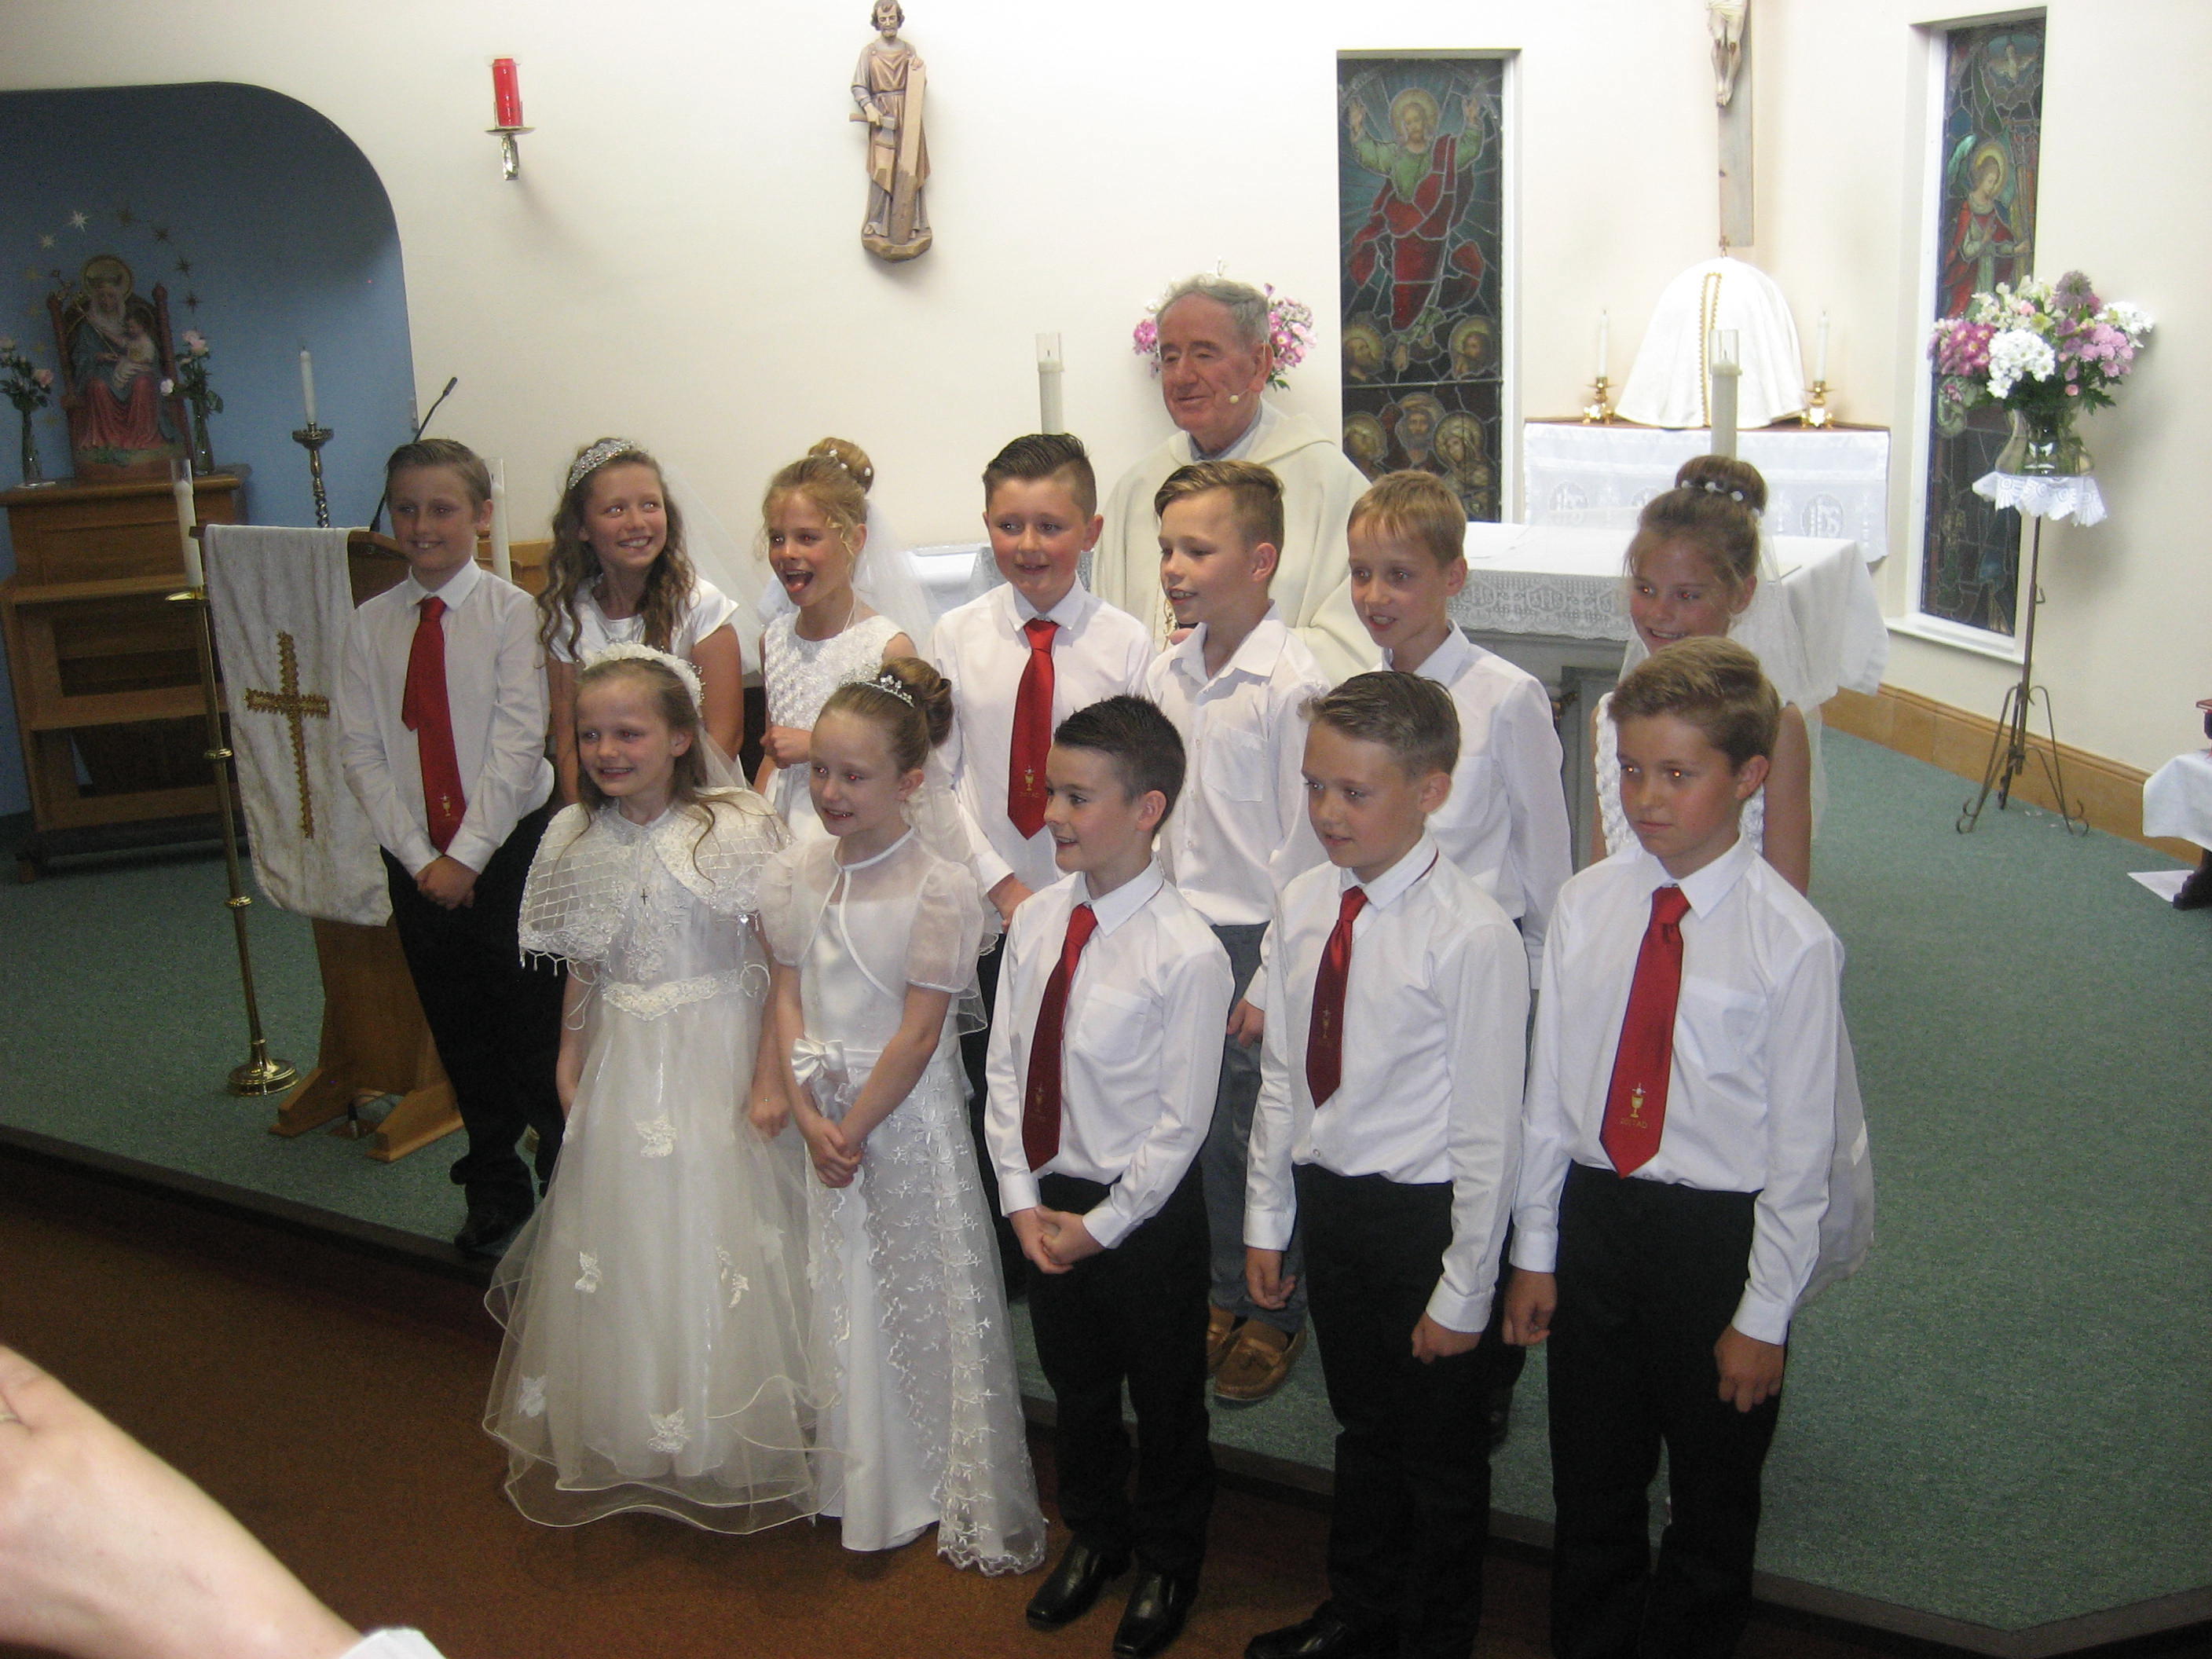 Wear to what for first holy communion